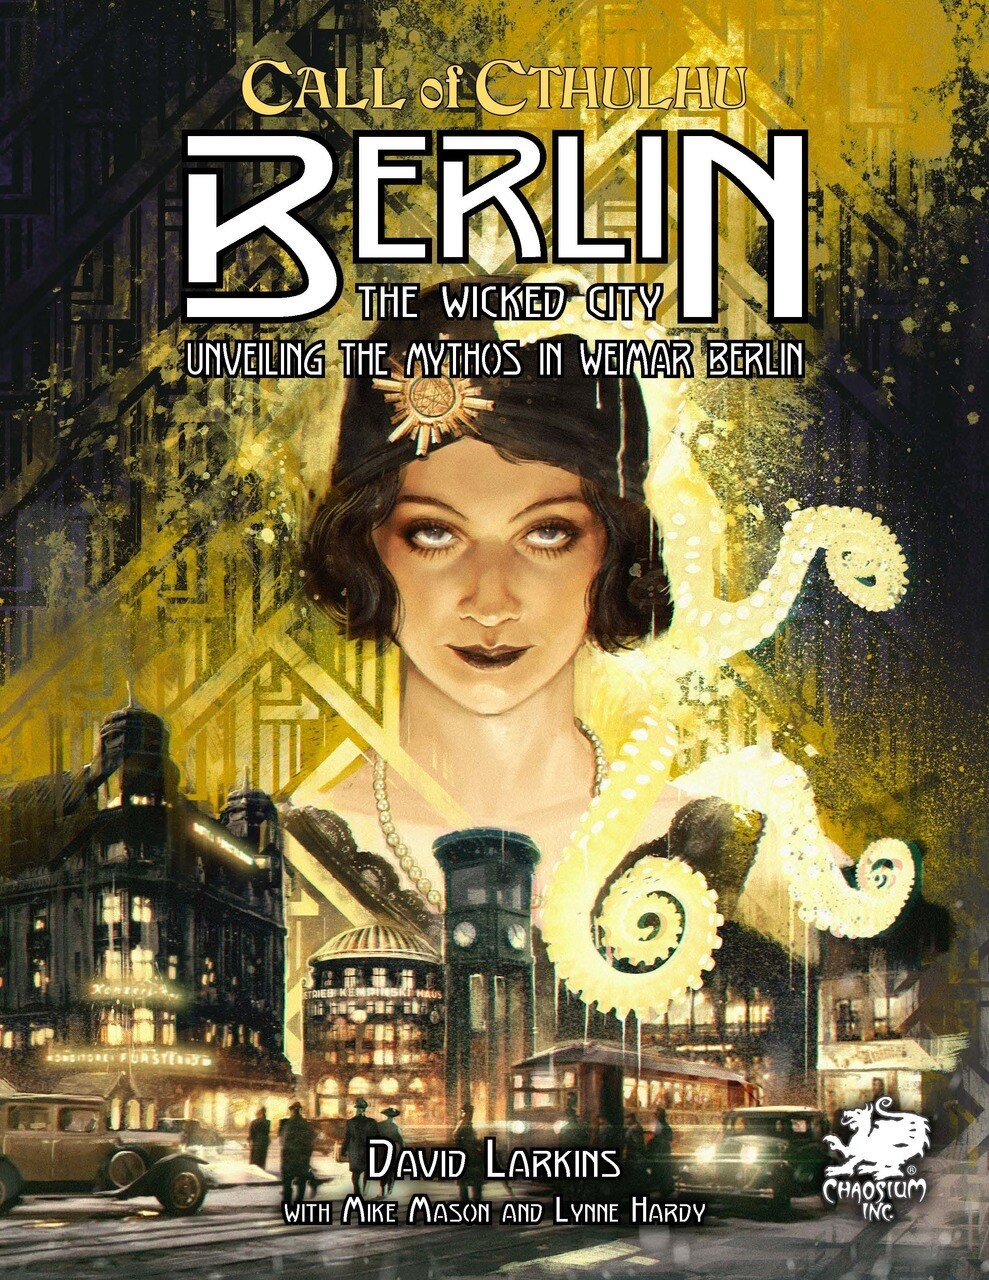 berlin-the-wicked-city-front-cover-57507.1552274875.1280.1280.jpg